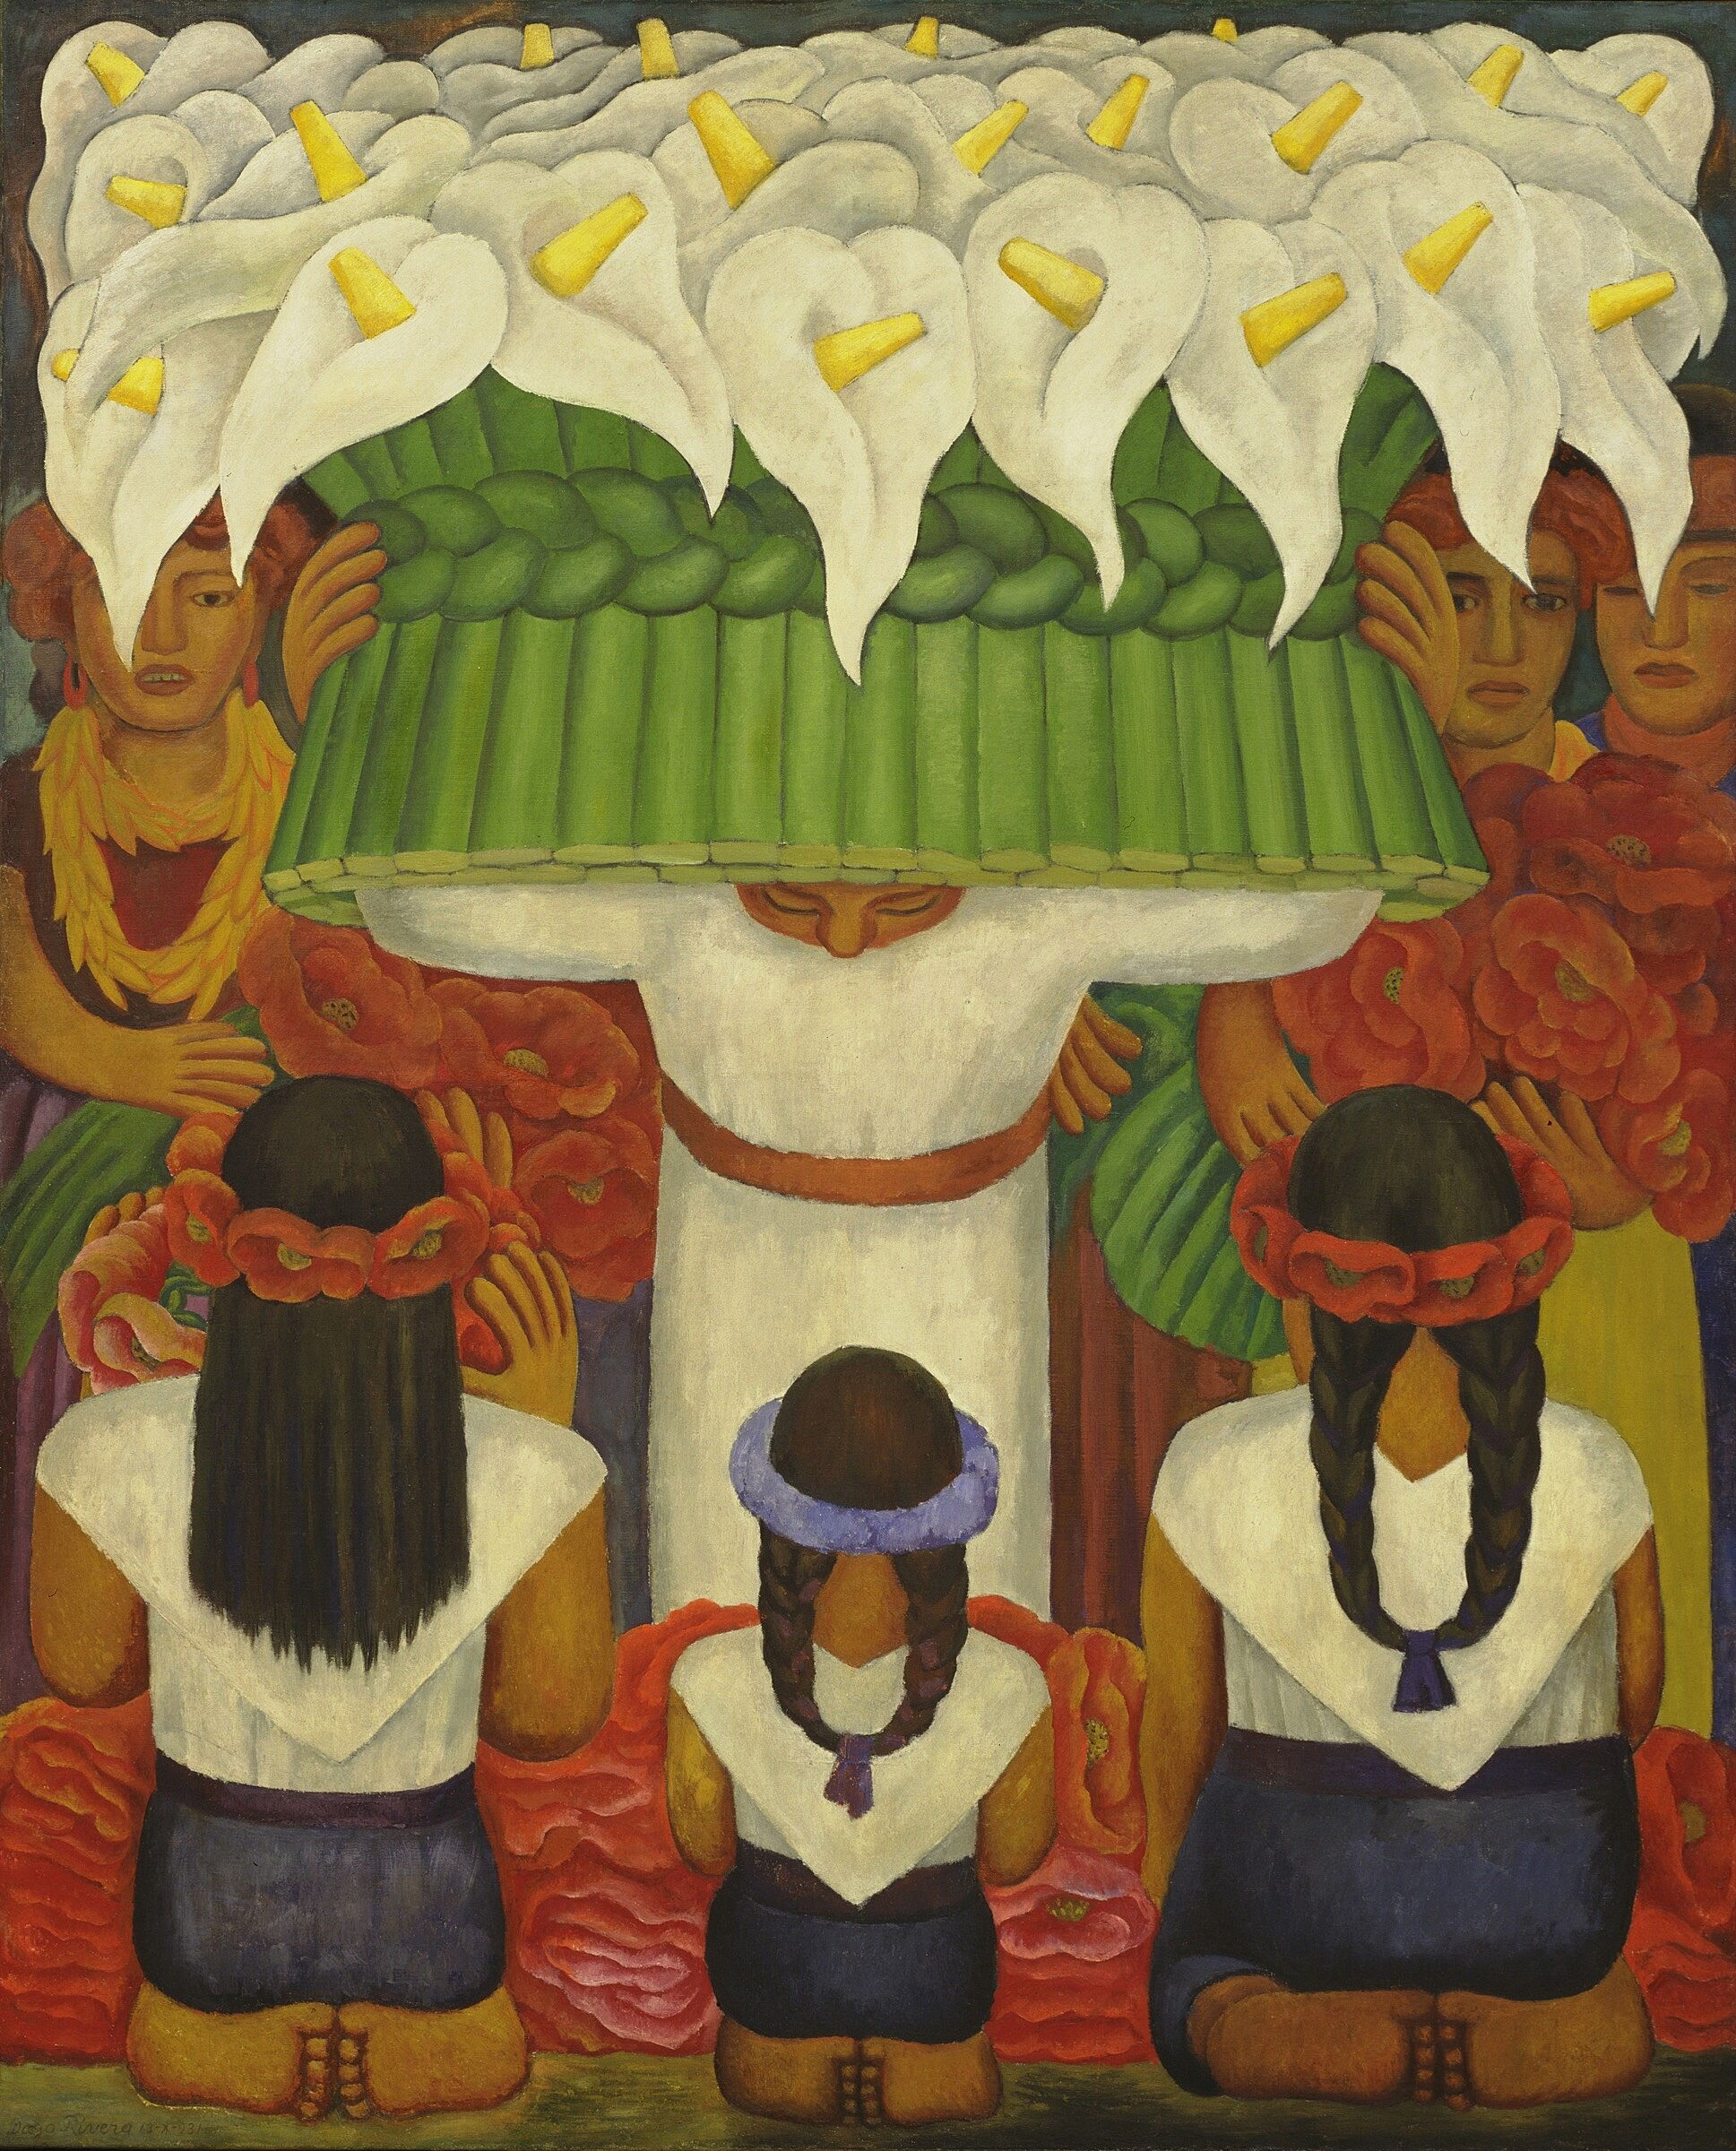 A painting of a person holding many flowers in front of three kneeling people.